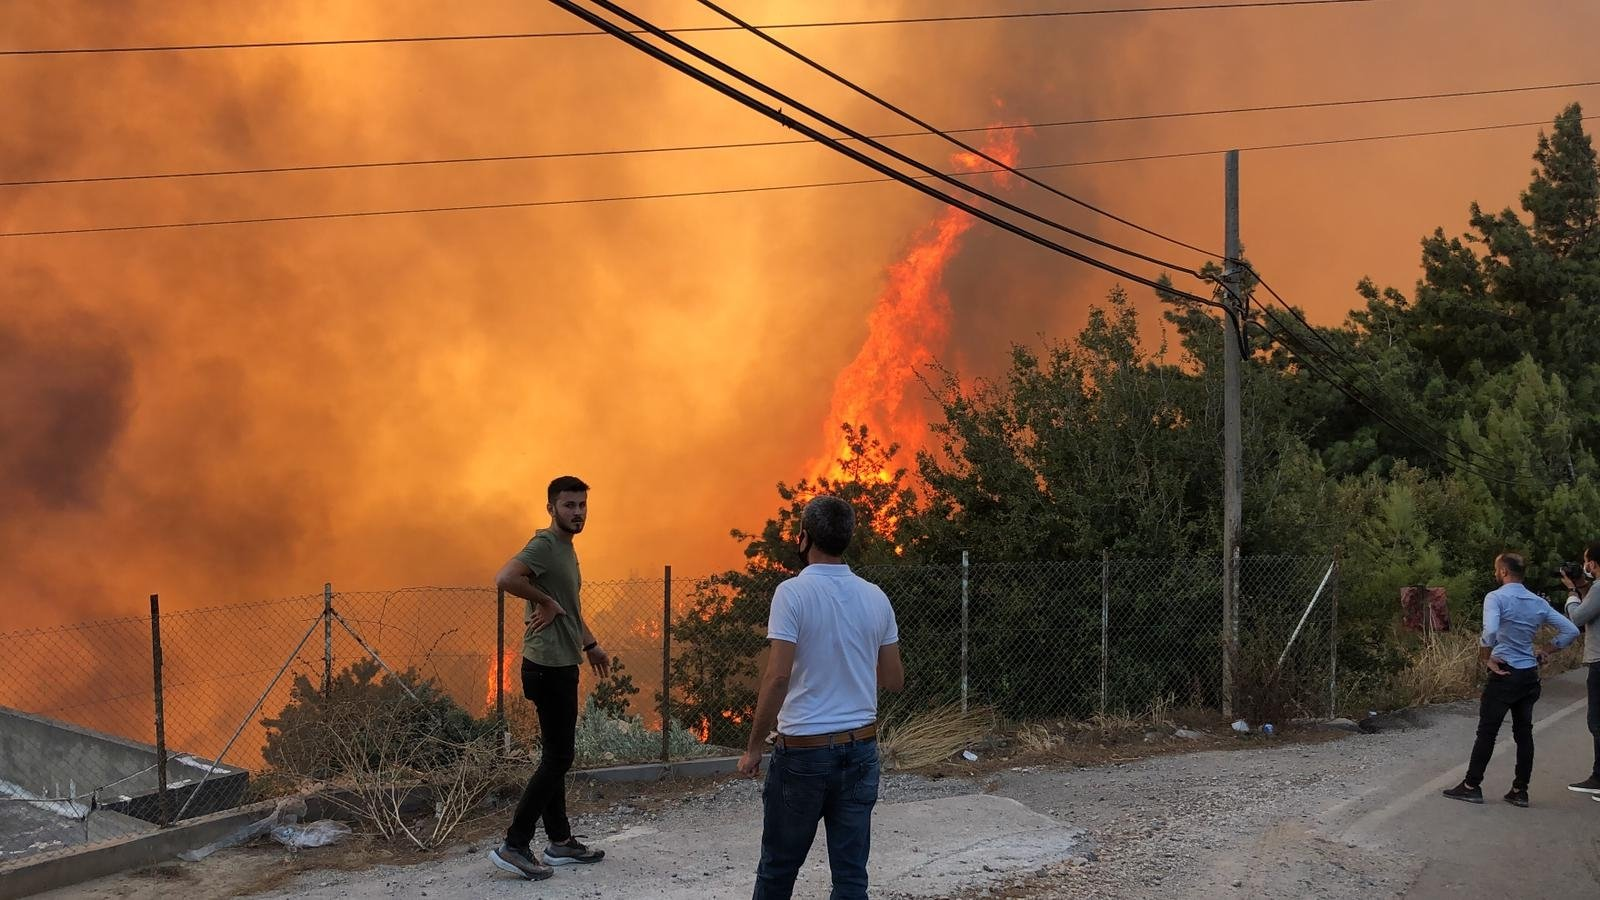 Citizens observe the forest fire in southern Hatay province's Iskenderun district on Oct. 27, 2020 (DHA Photo)